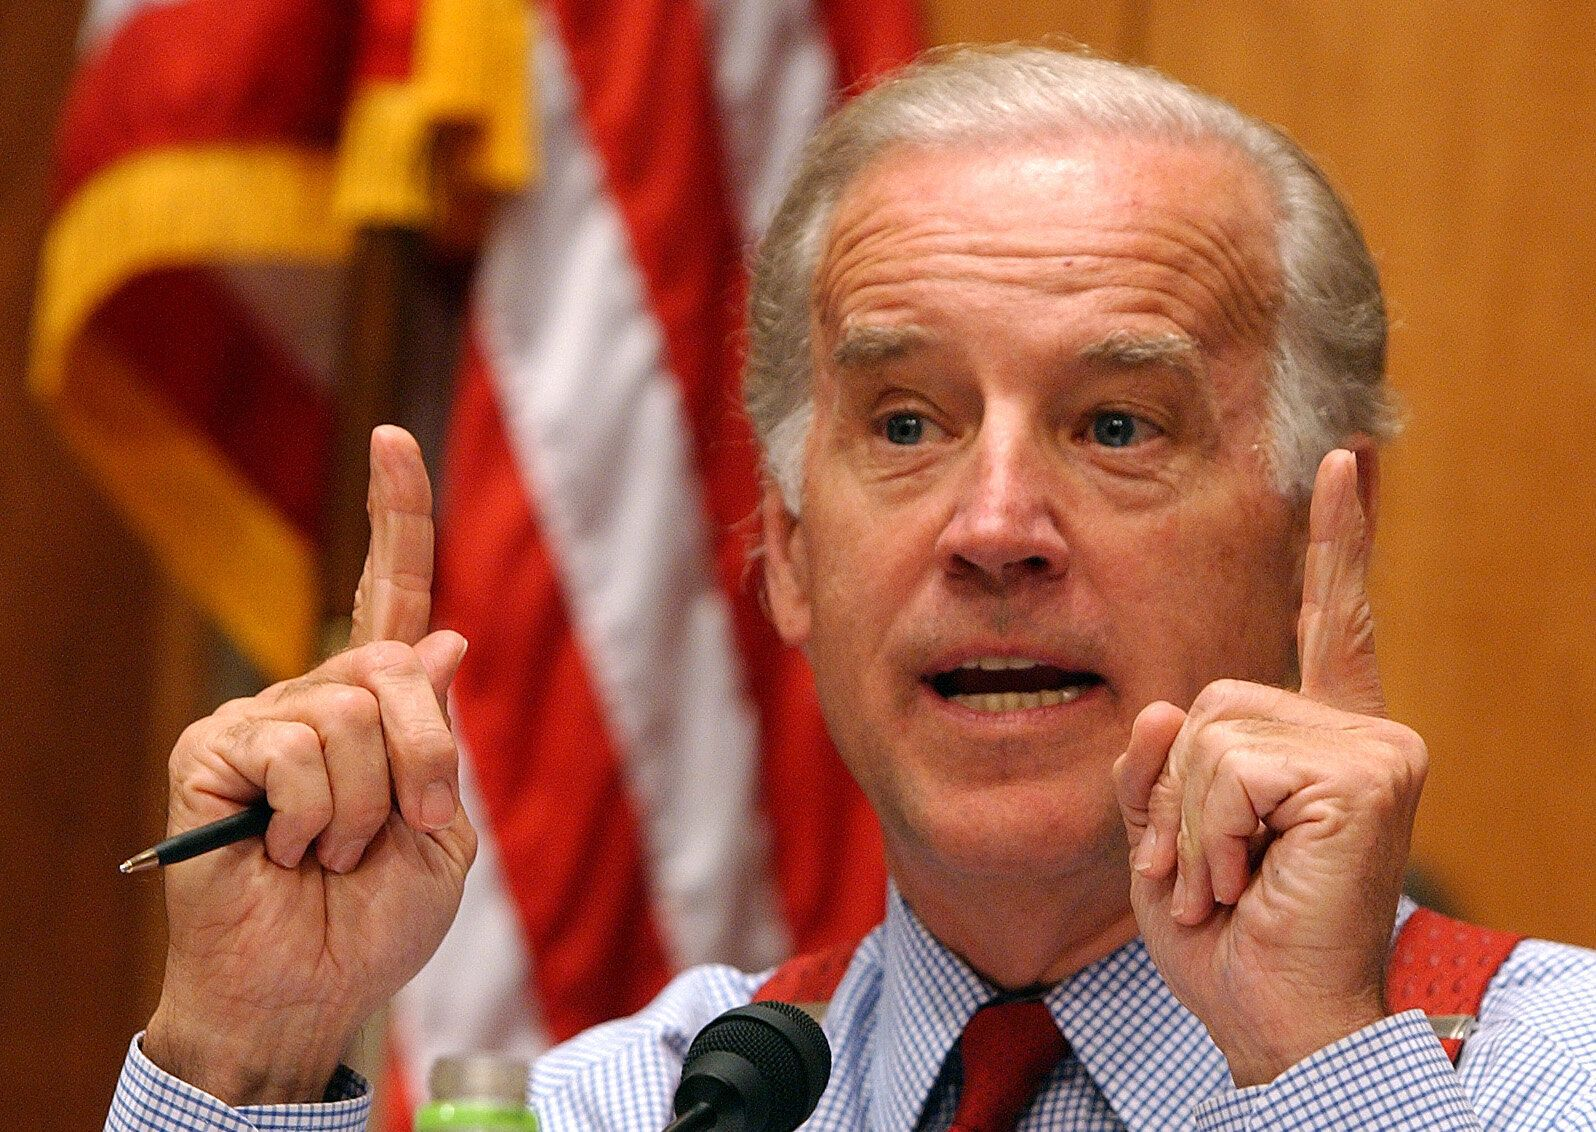 From 1999 through 2005, Sen. Biden was the leading Democratic supporter of bankruptcy reform legislation in the Senate.